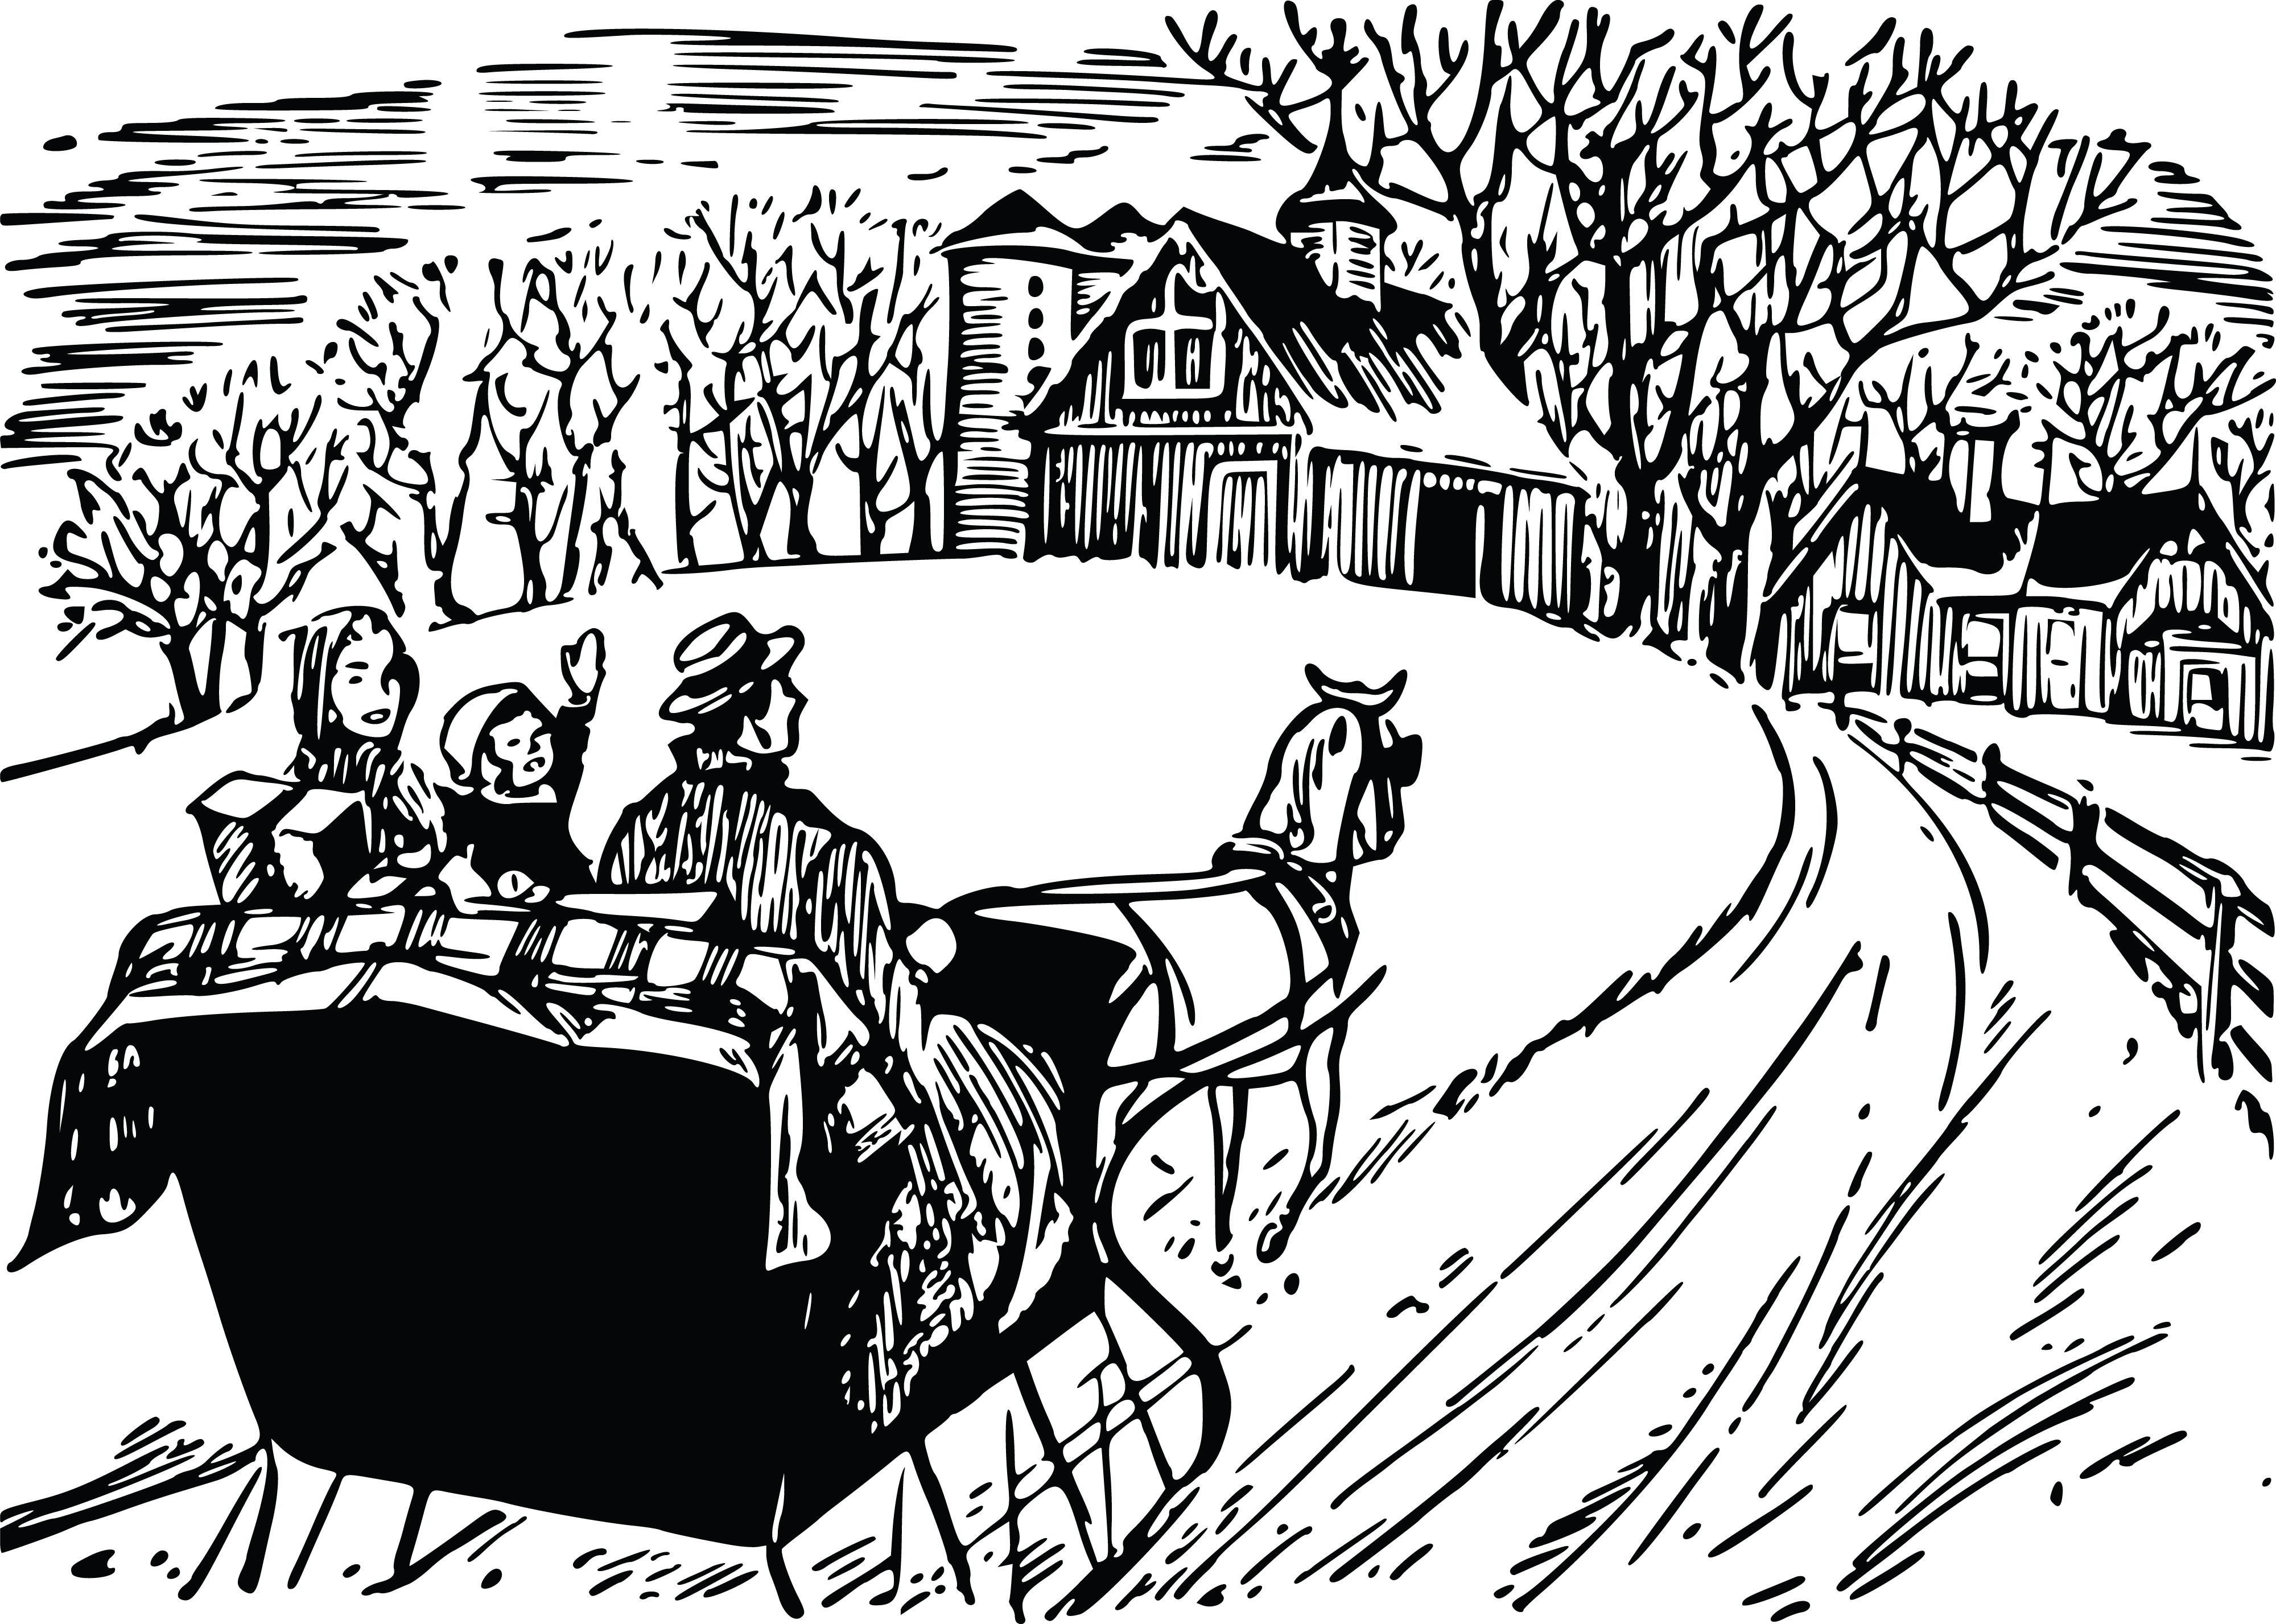 Free Clipart Of A winter sleigh ride.